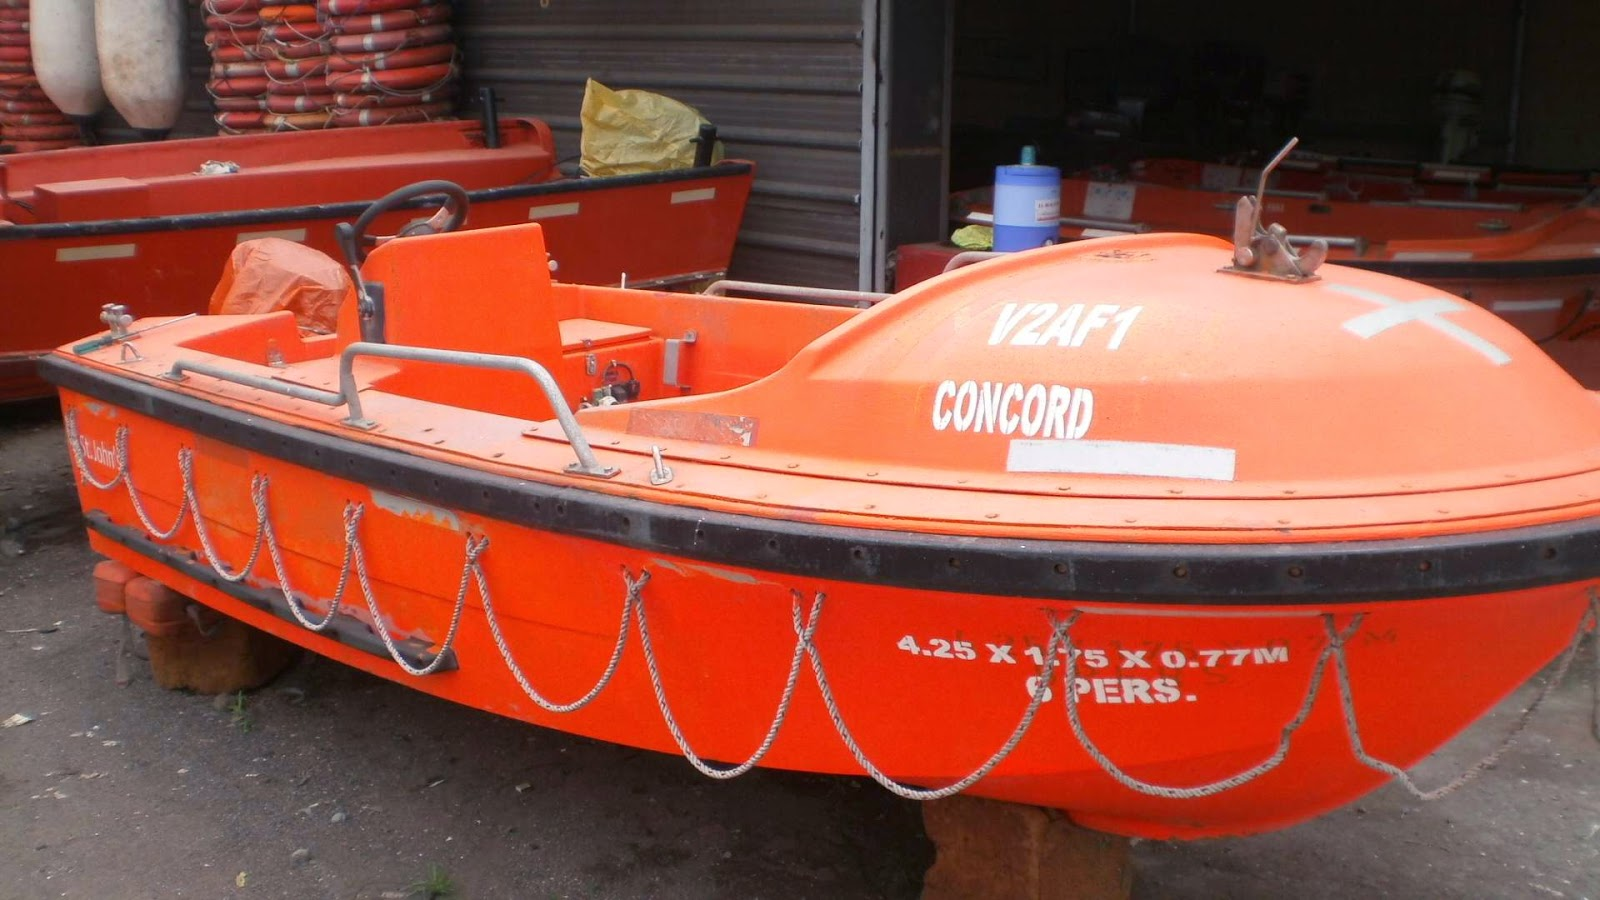 used fiber boats in India, used boat in India for sale with engine, second hand boats for sale, small boats for sale in India